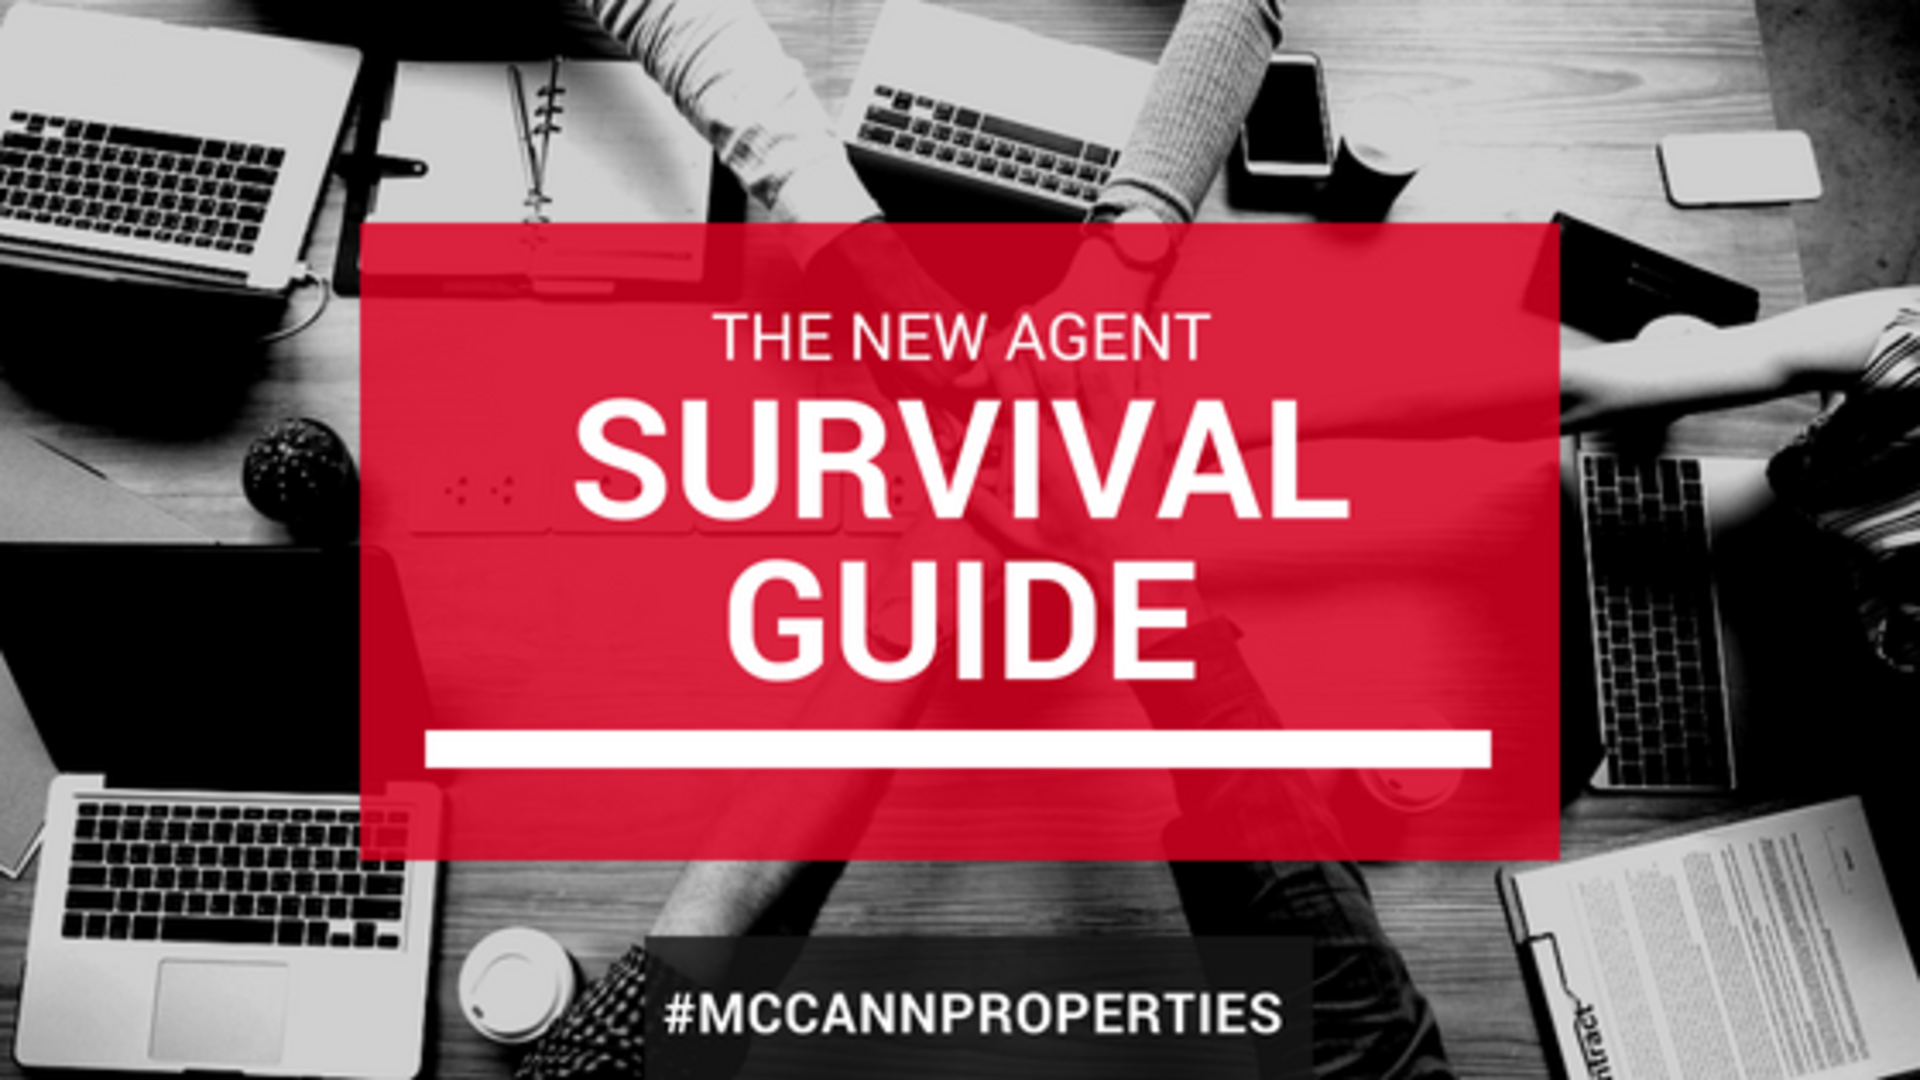 New Agent Survival Guide